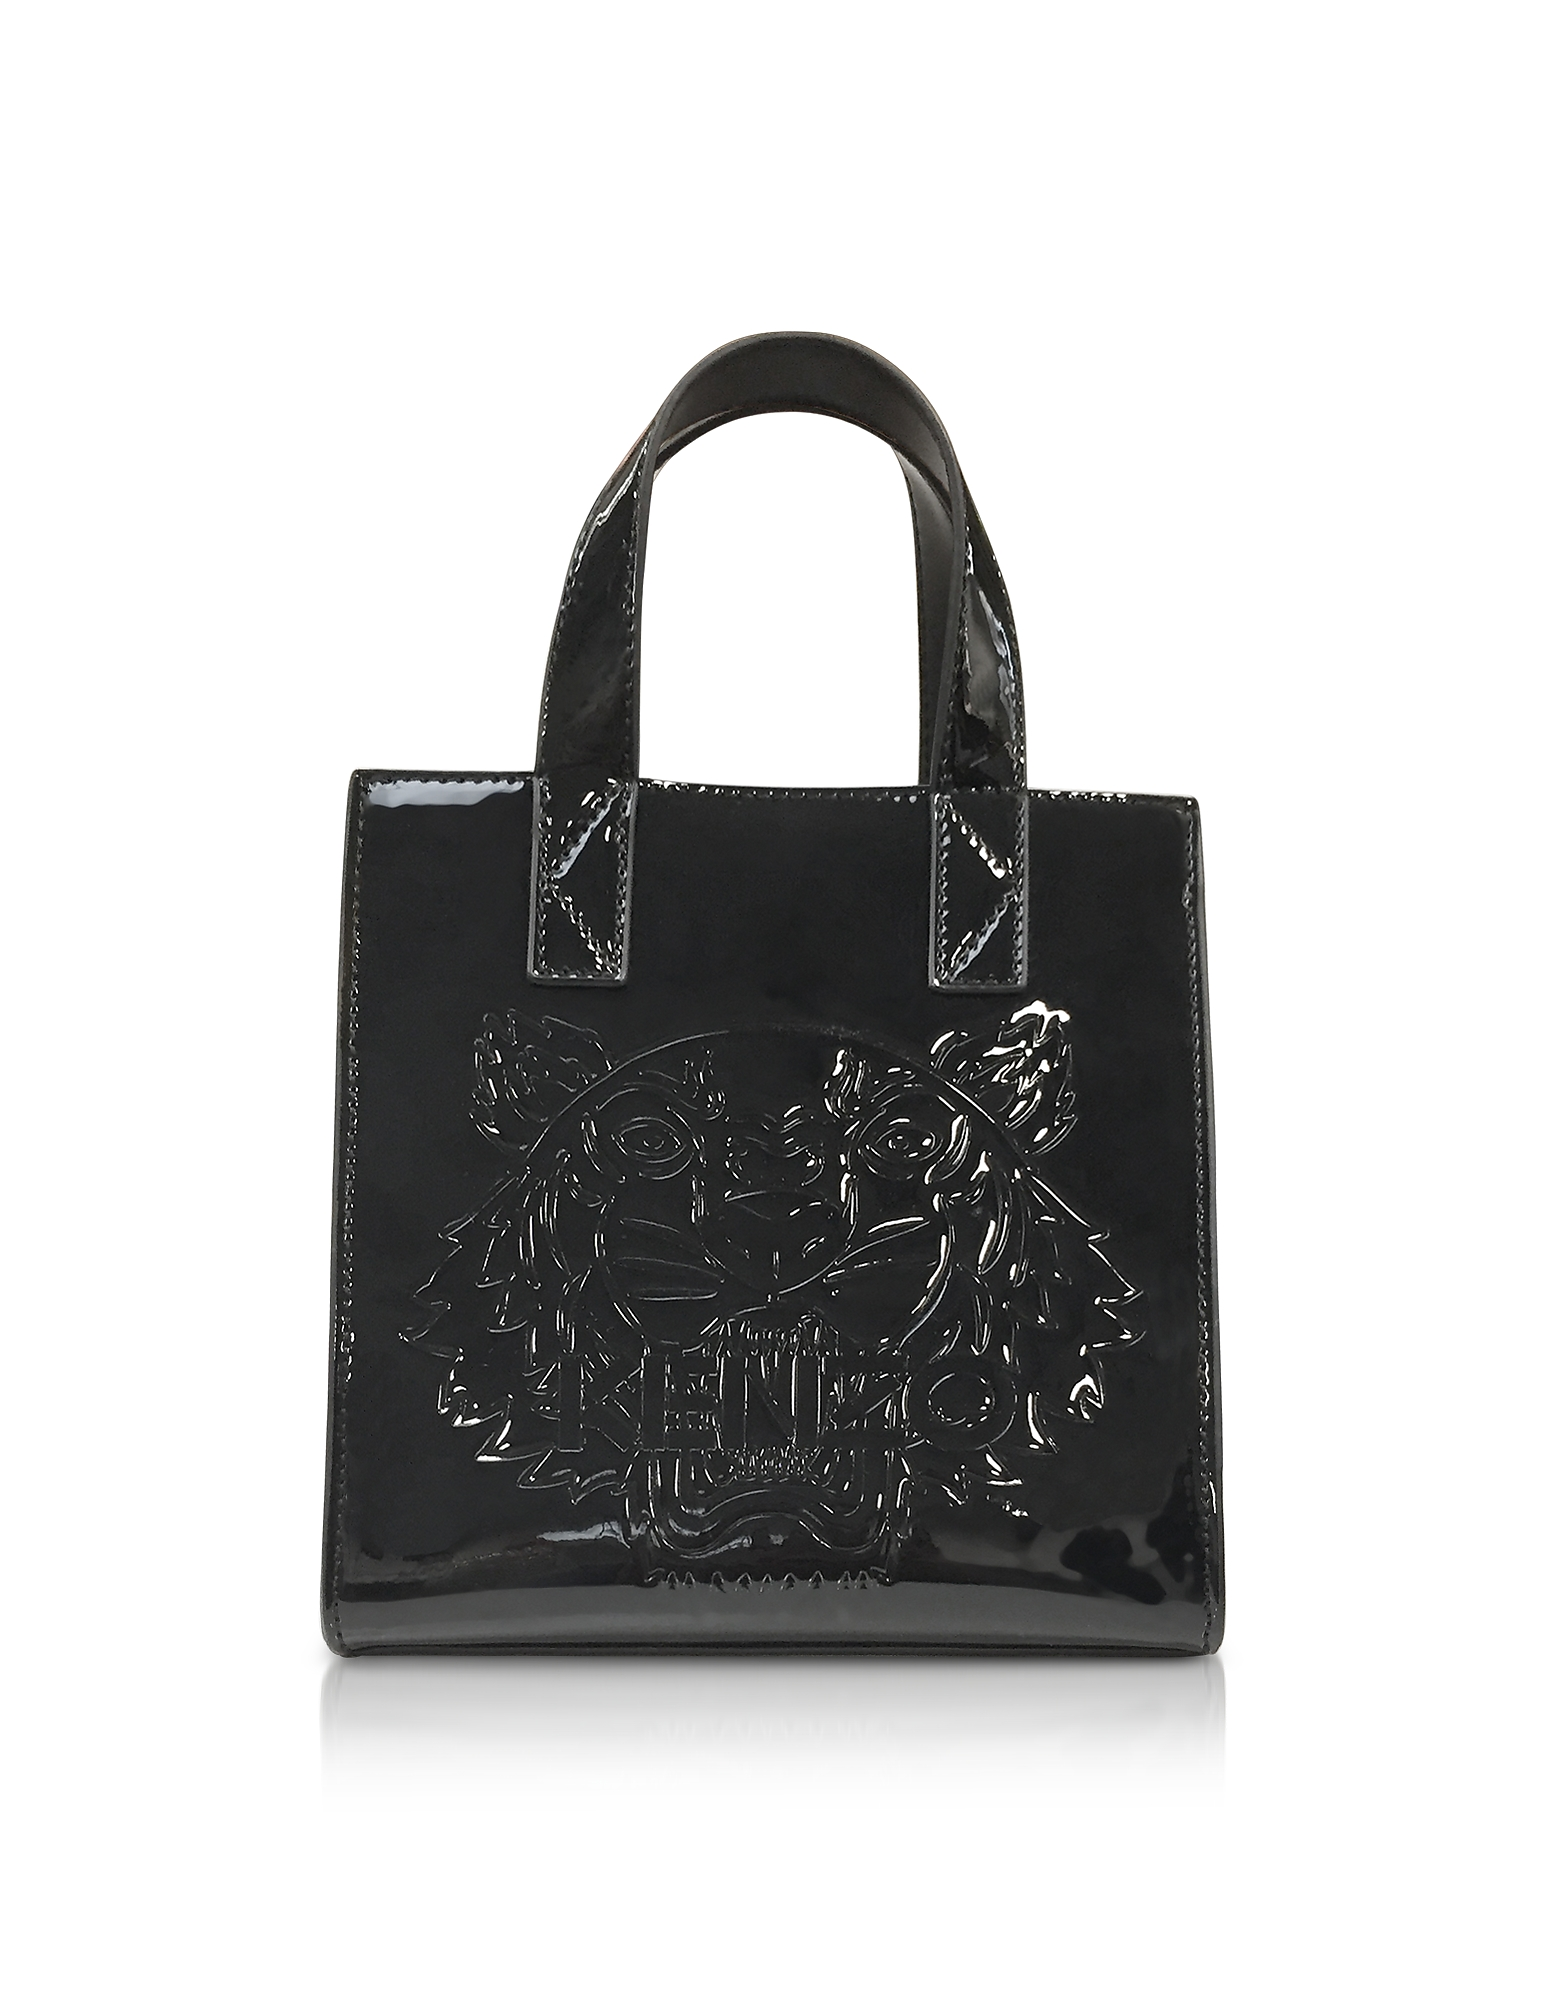 Kenzo Handbags, Black Patent Mini Tiger Tote Bag